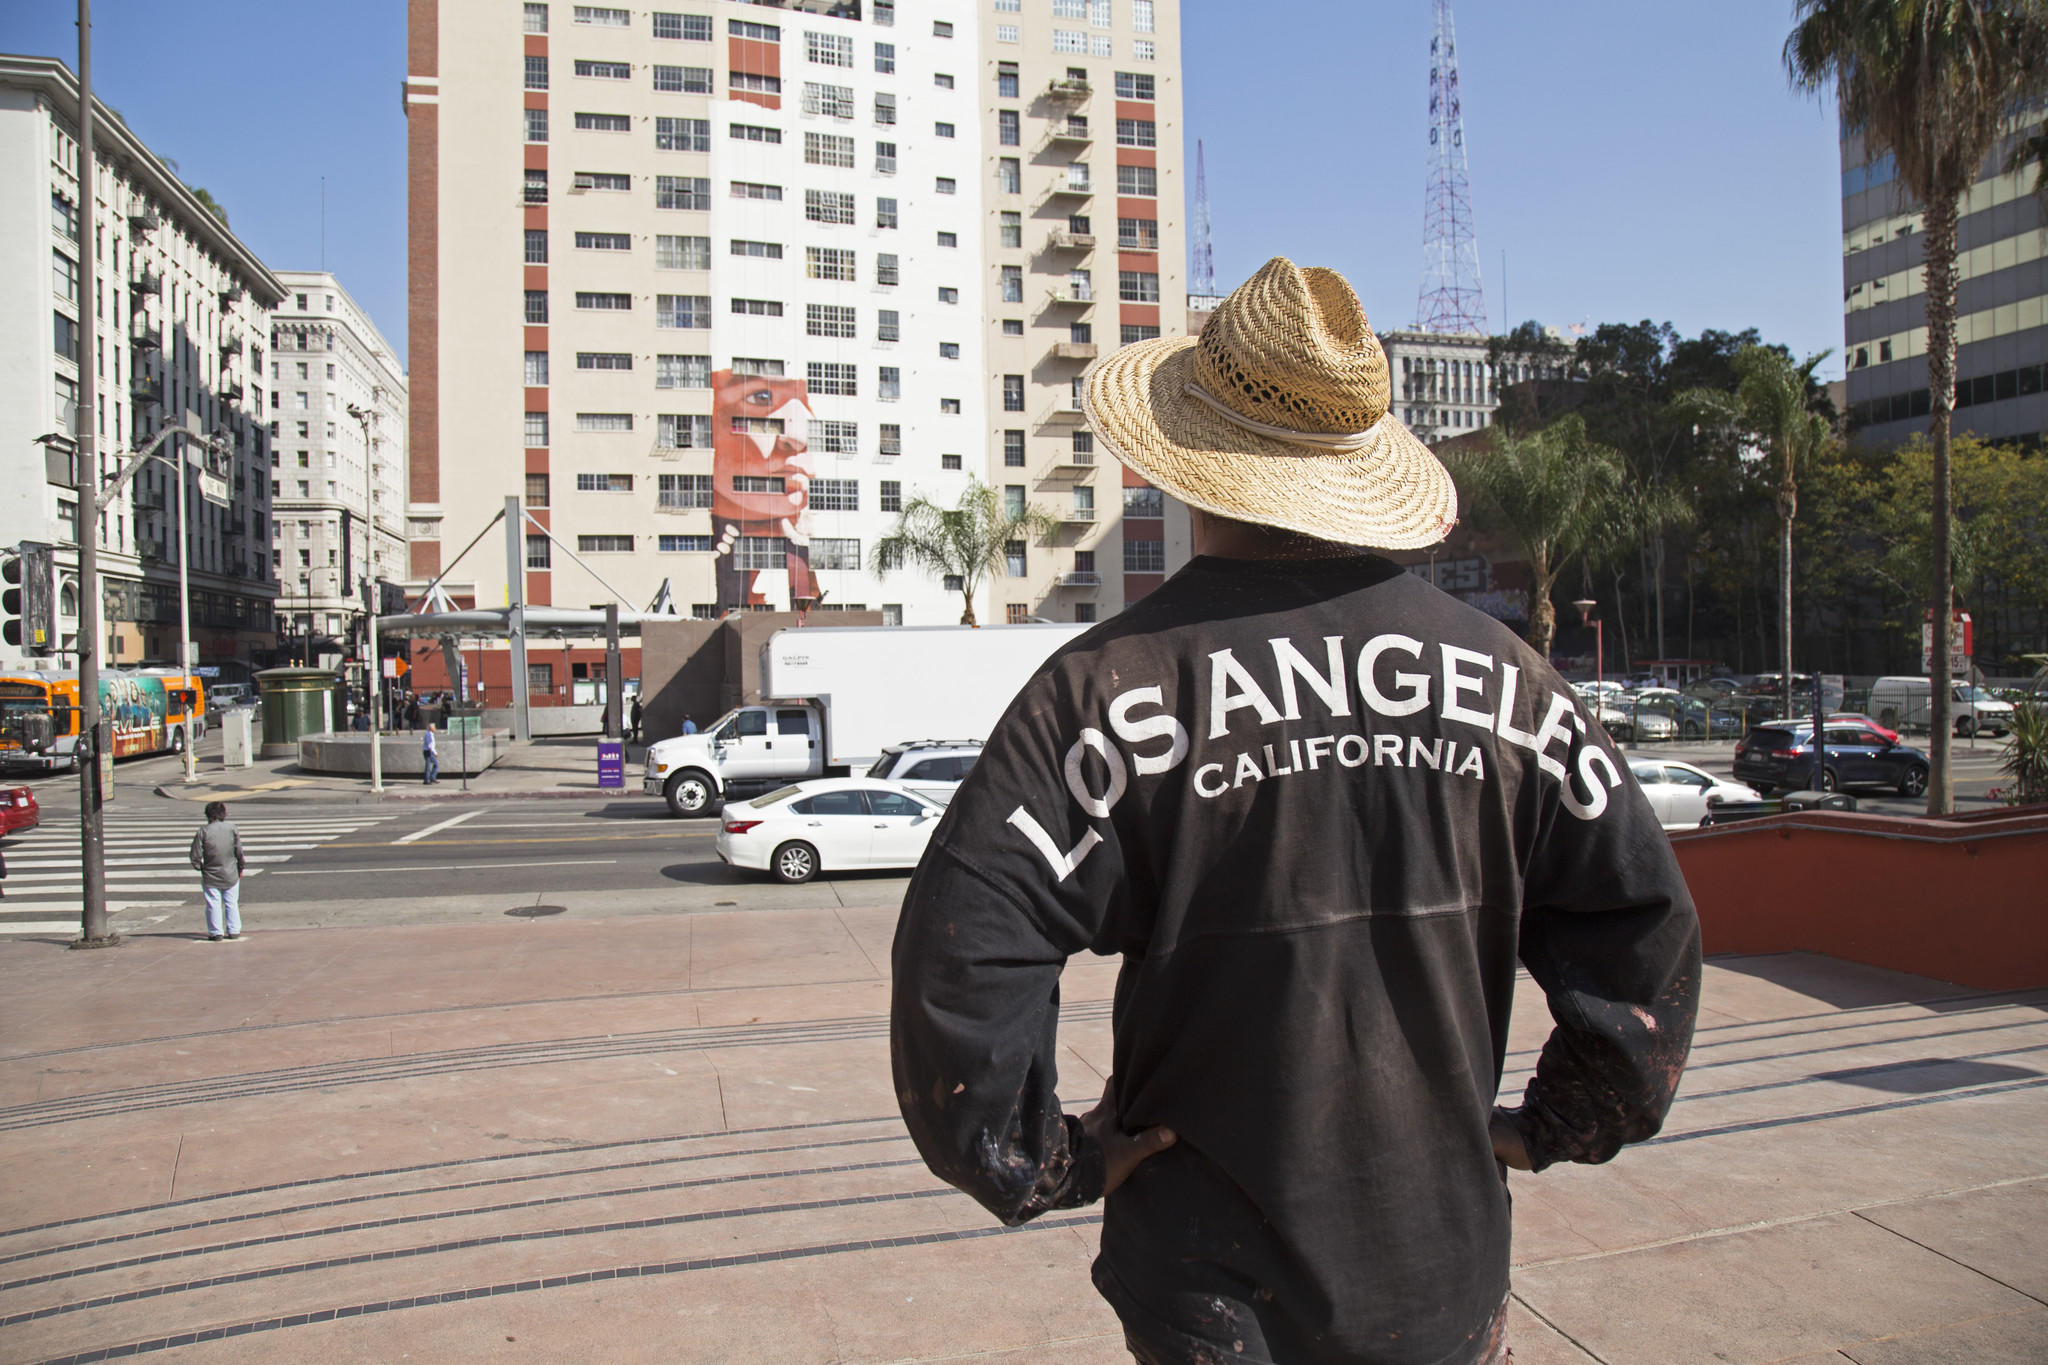 Robert Vargas examines his new mural from Pershing Square.